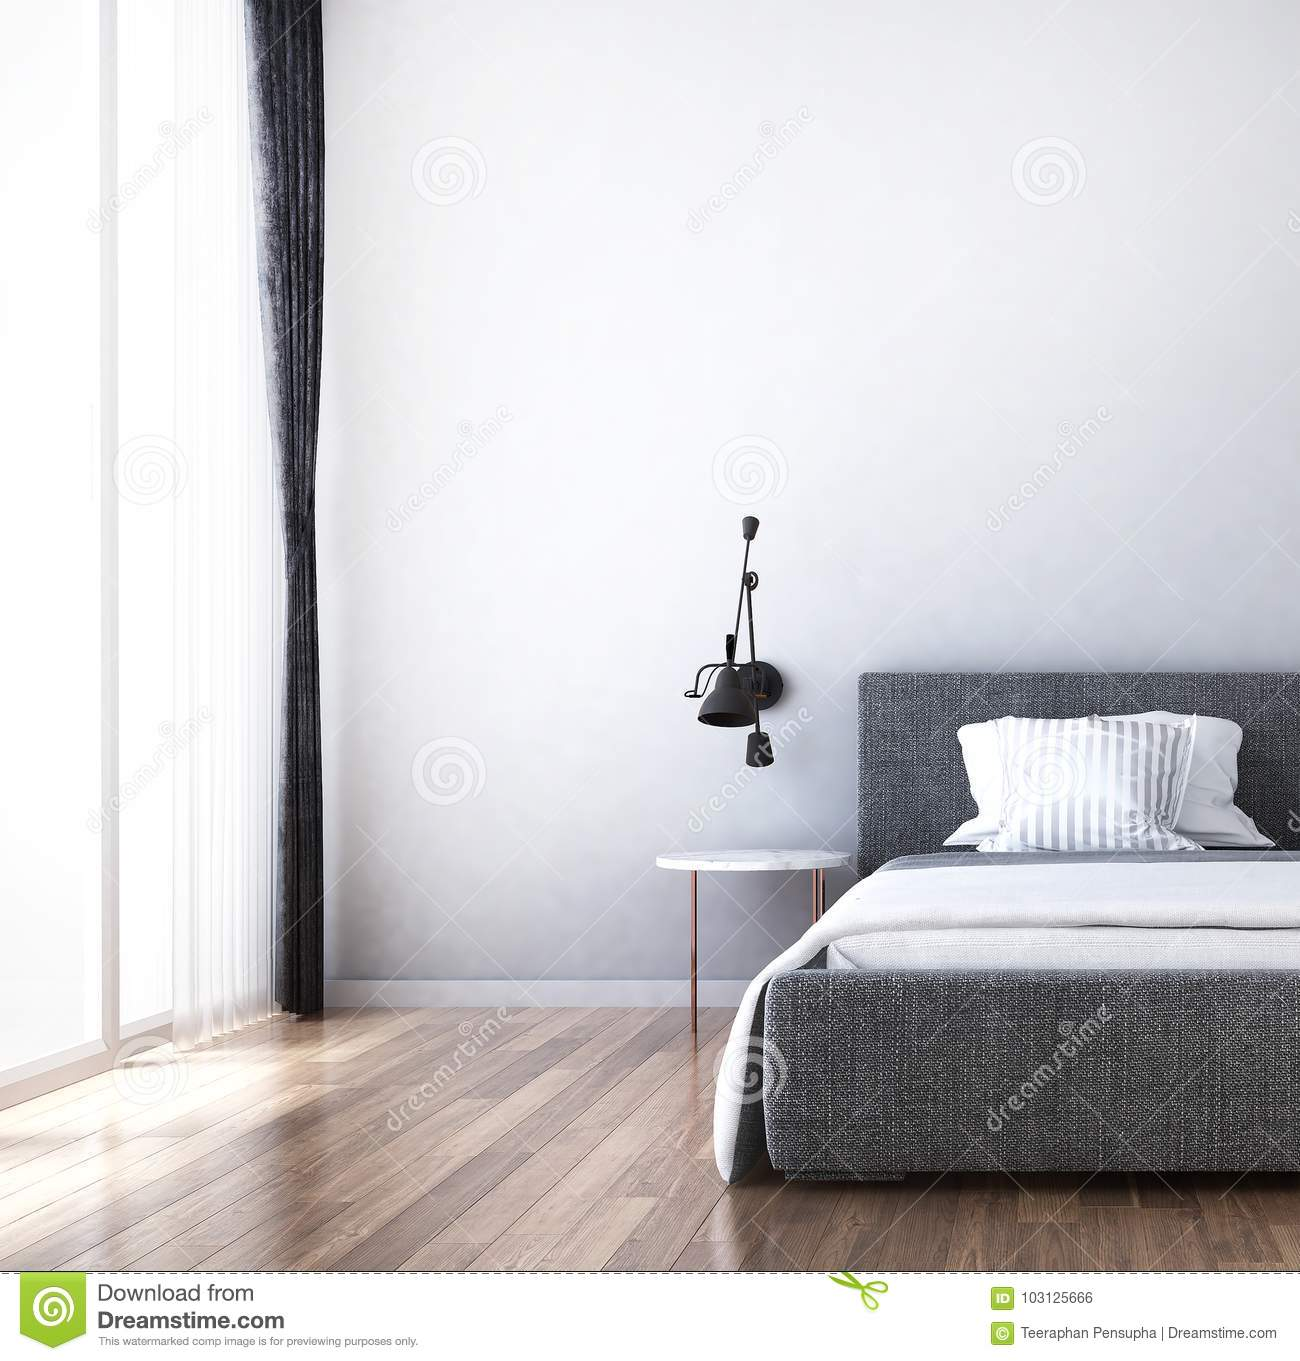 The Interiors Design Idea Of Bedroom And Wood Tile Wall Texture Stock Illustration Illustration Of Lamp House 103125666